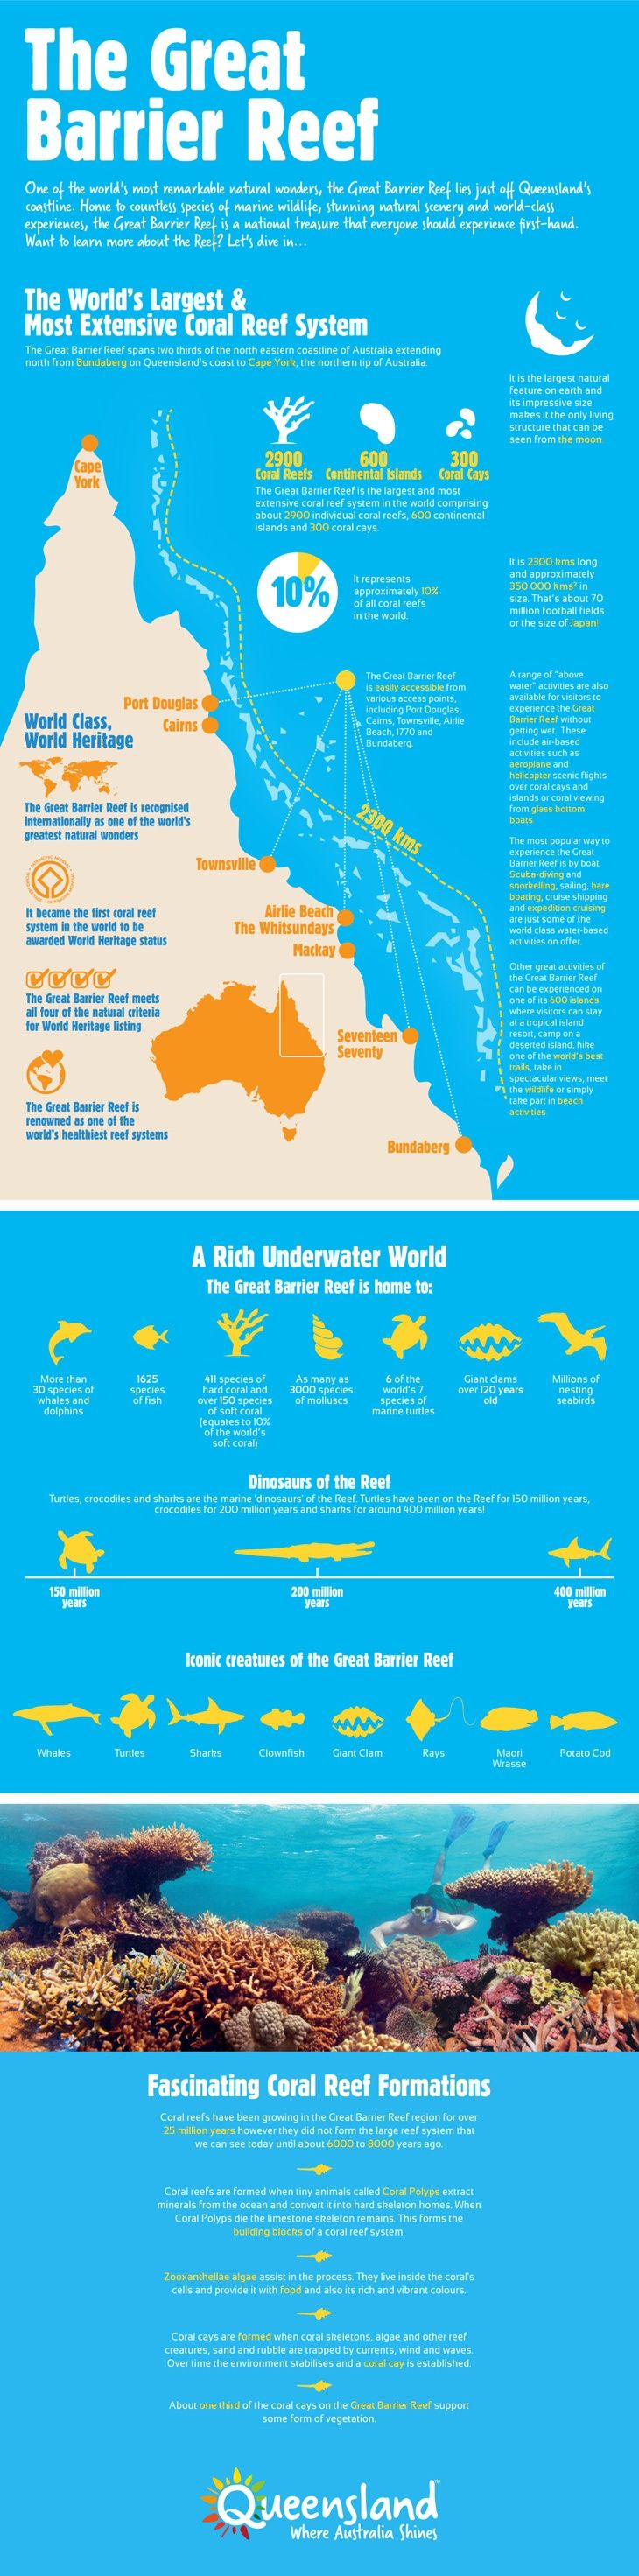 Here's some fast facts about one of the world's most remarkable wonders - The Great Barrier Reef.    Find more fast facts here: http://j.mp/IiDaxe